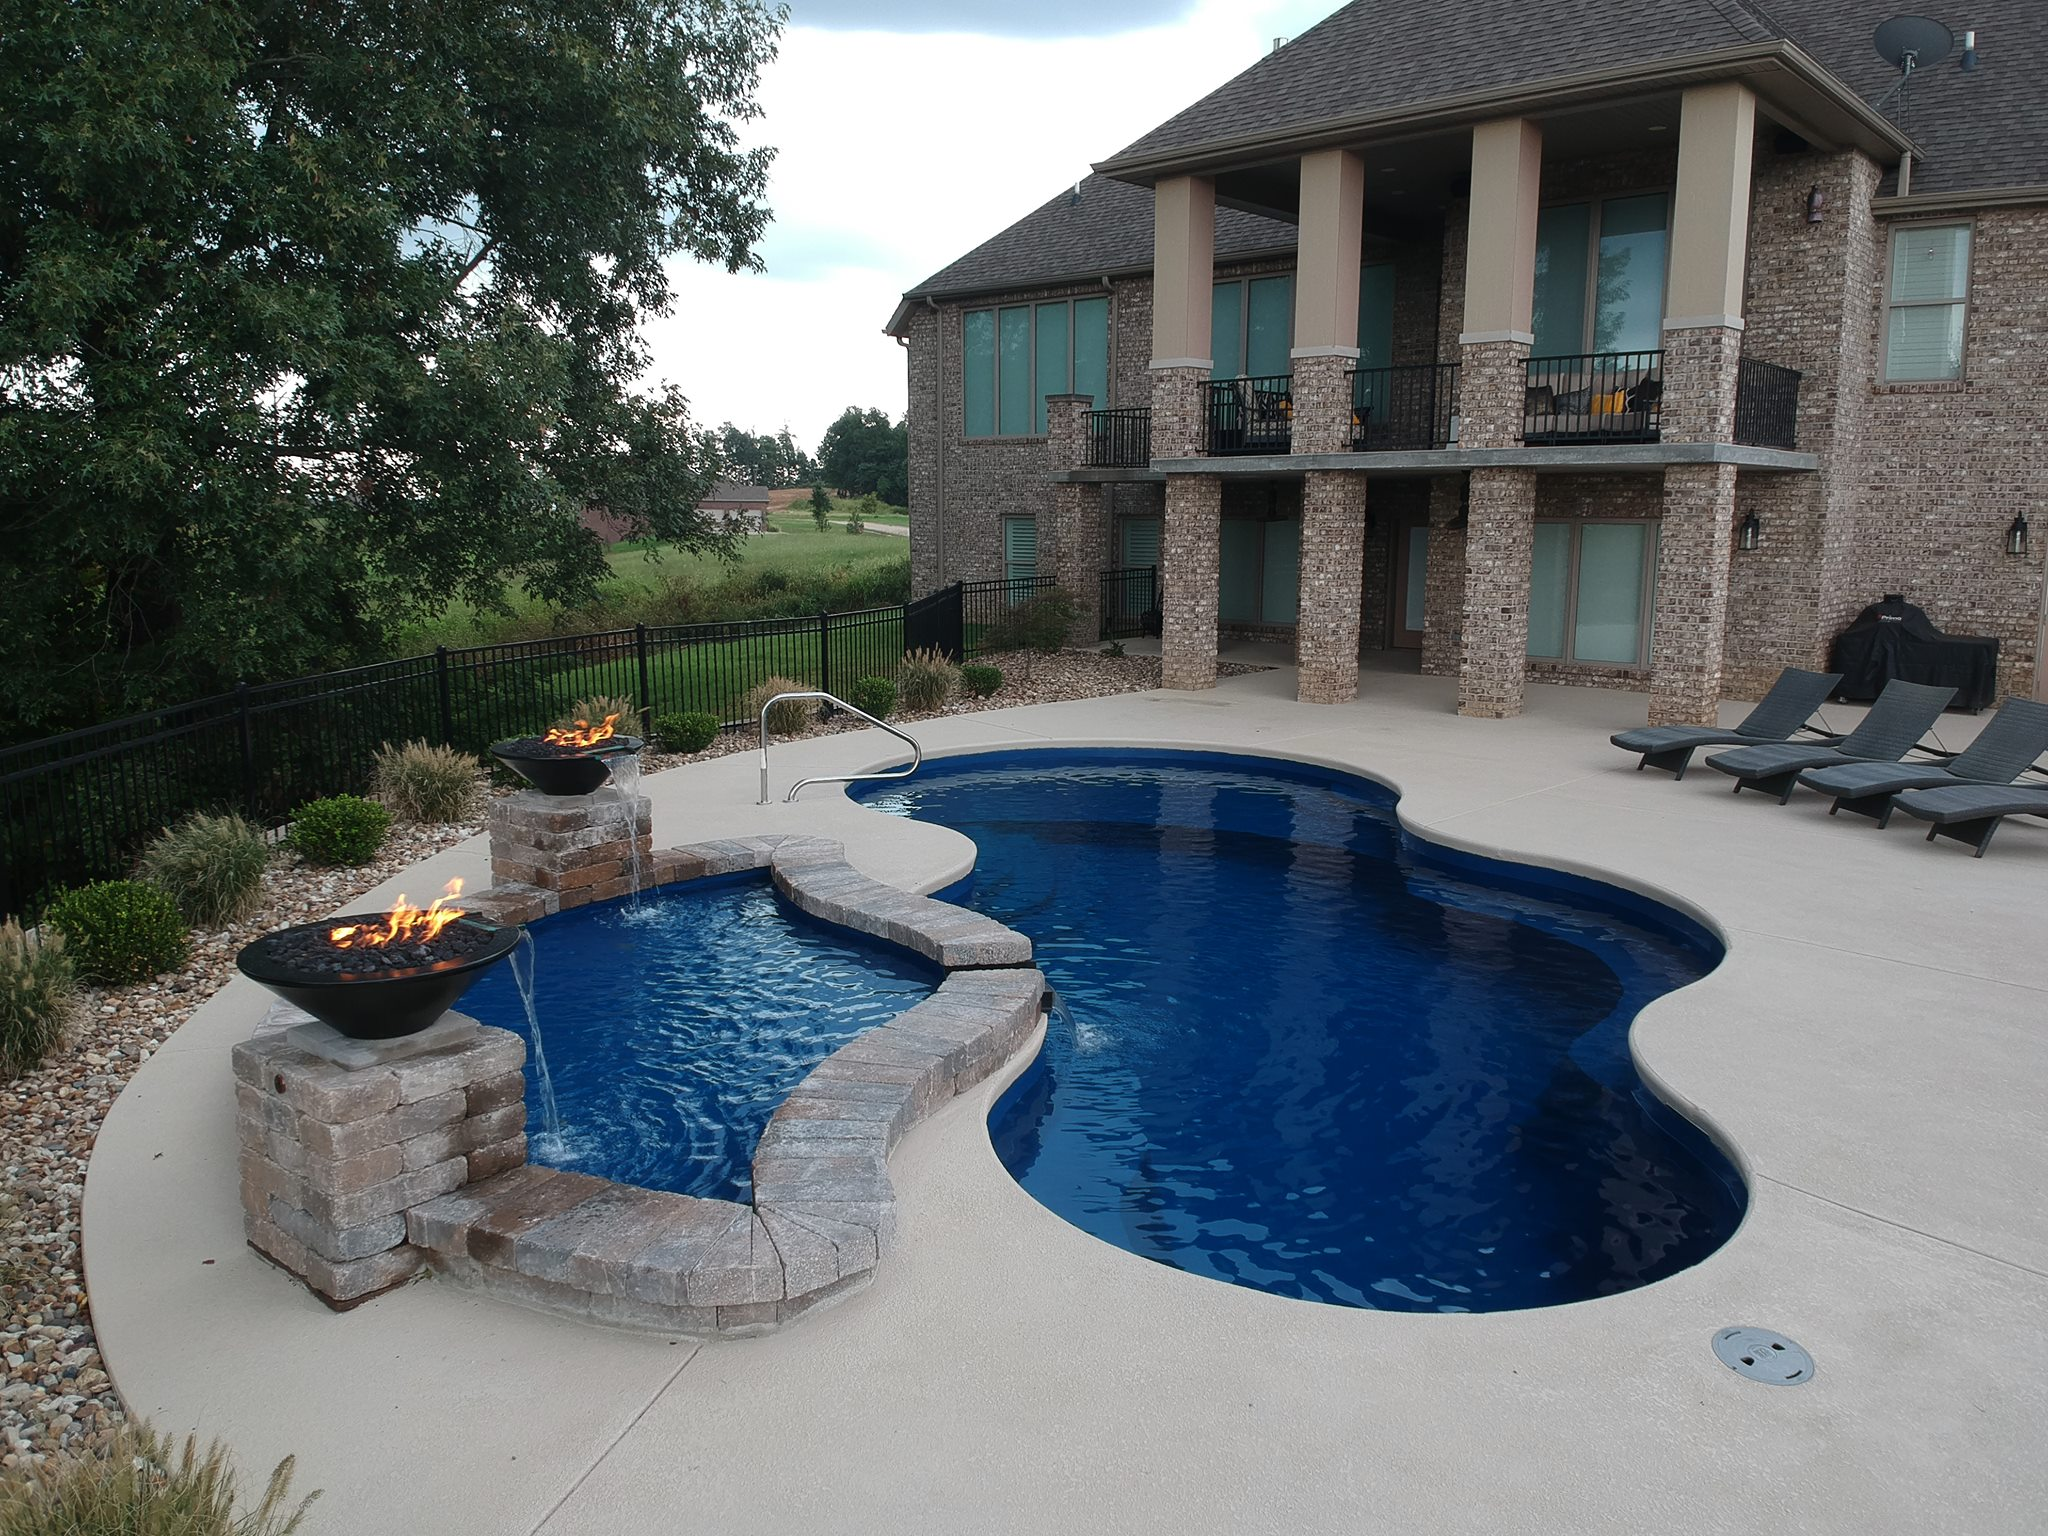 Missouri's Top Rated Local® Pool Service & Repair Award Winner: Farmer's Pool & Spa